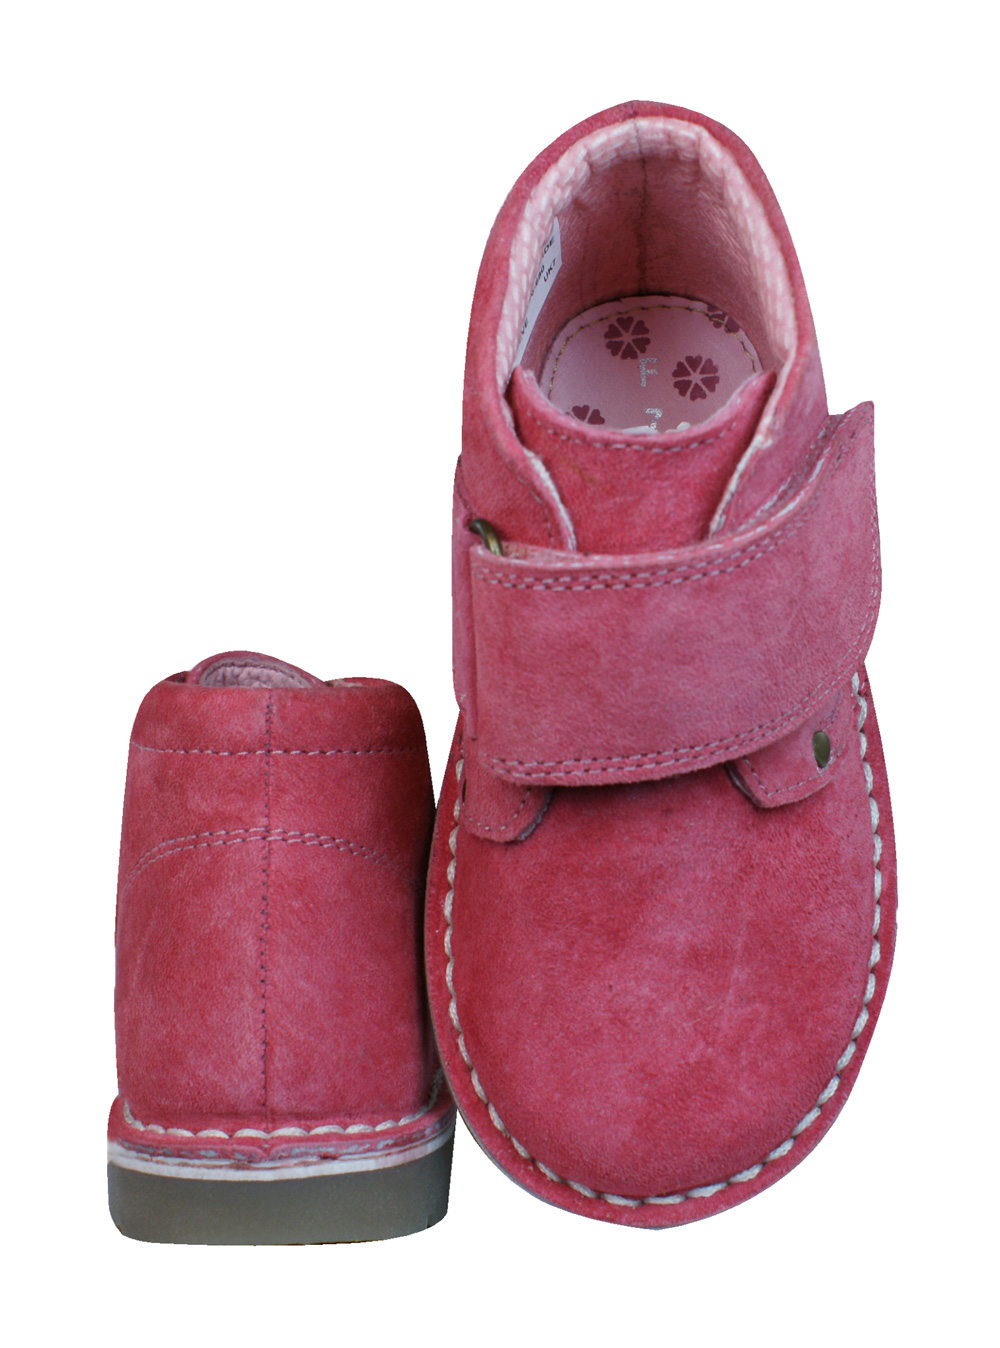 hush puppies reve suede leather desert boots shoes